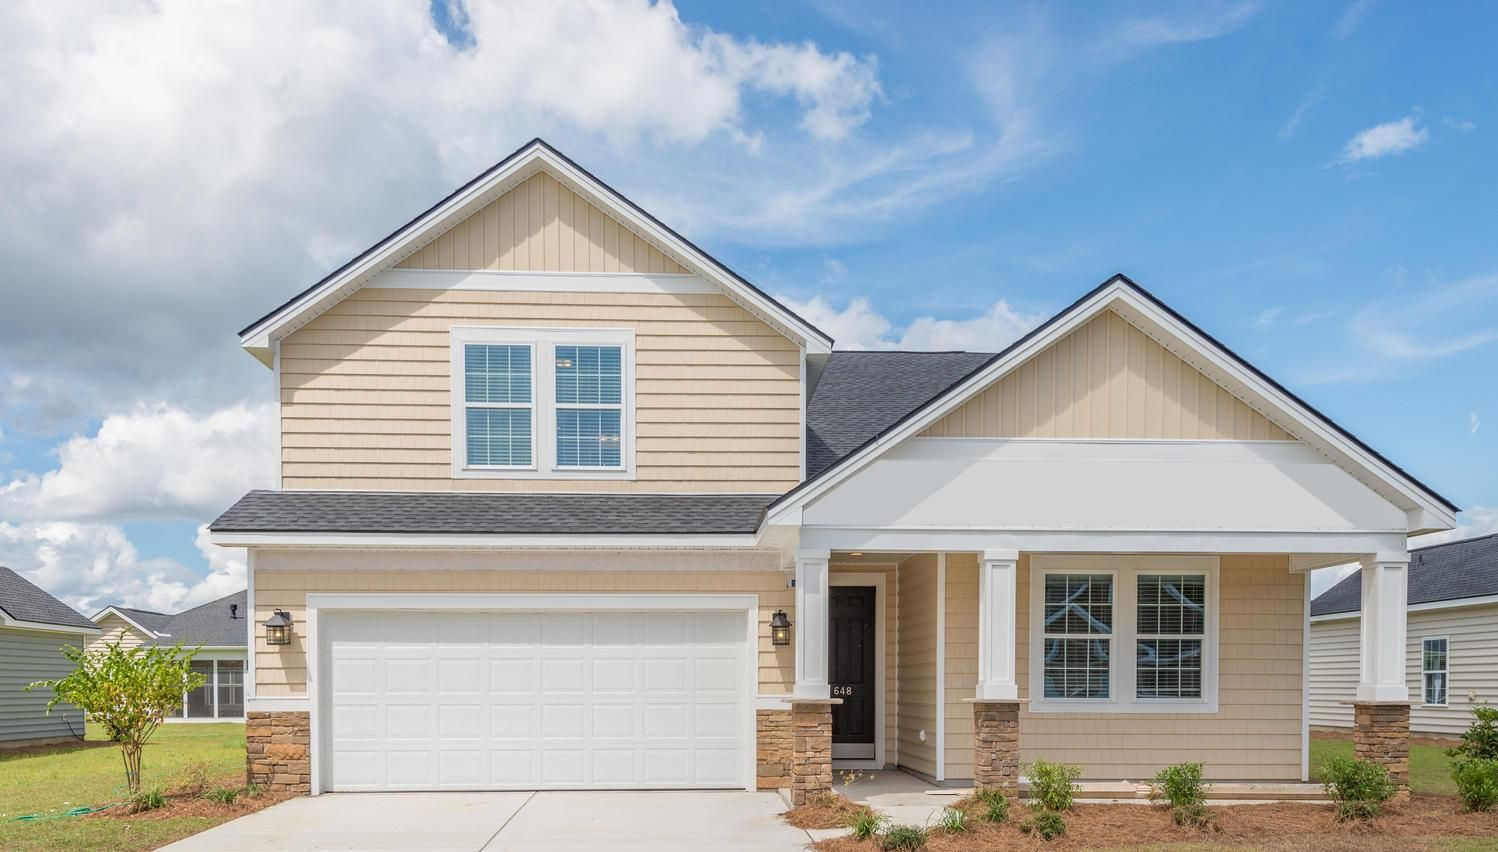 Jarvis South carolina homes, New homes for sale, New homes